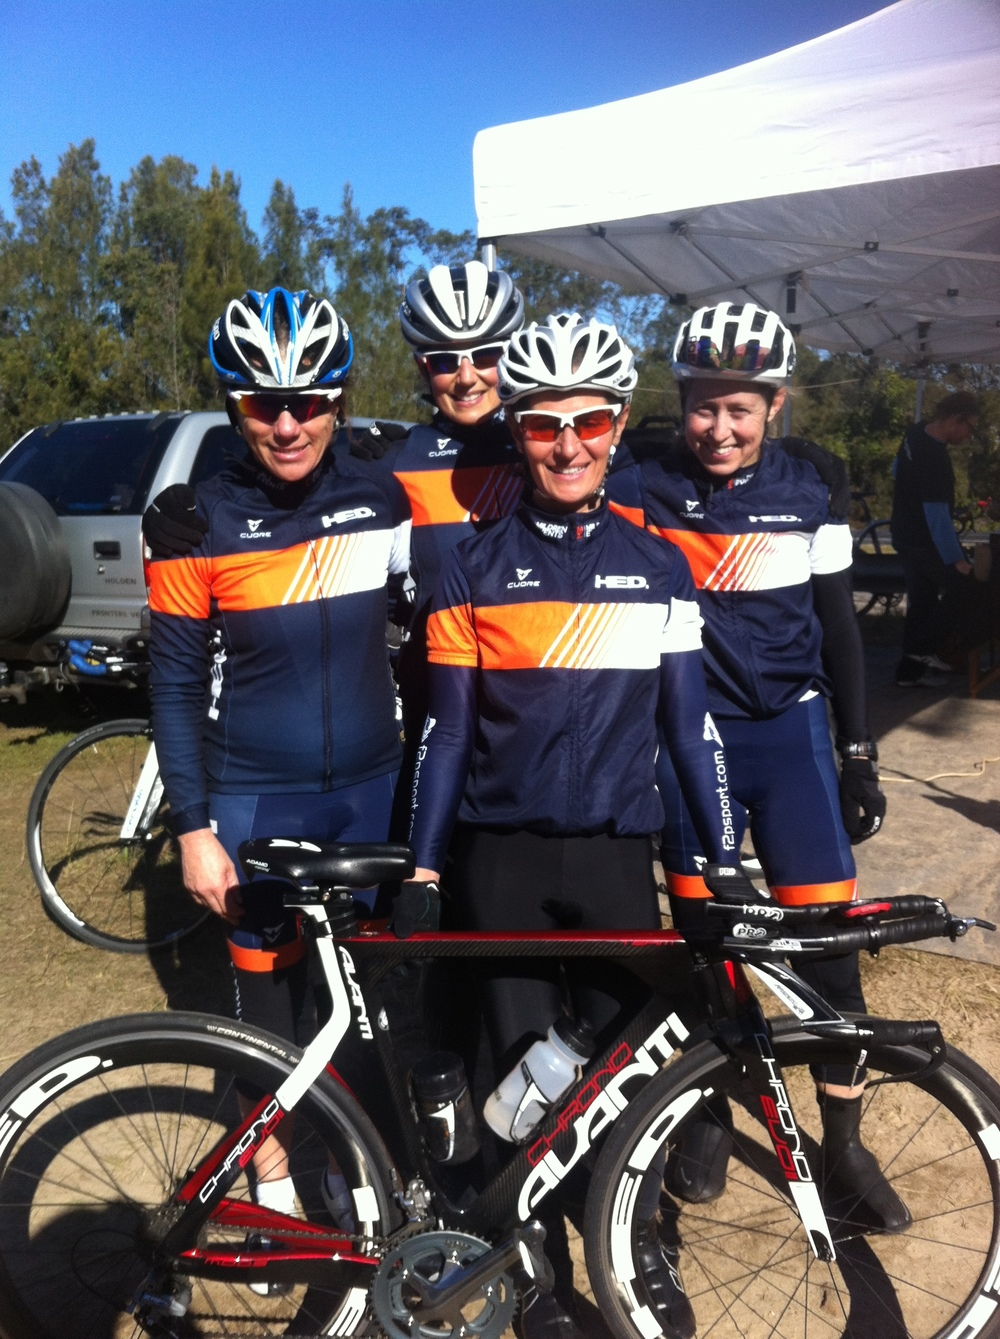 BiciSport - Mildren Events Womens Team  for the Nowra TTT Championships on 16 July with from left to right Frances Edwards, Kylie Mildren, Cecile Beams and Penny Kee